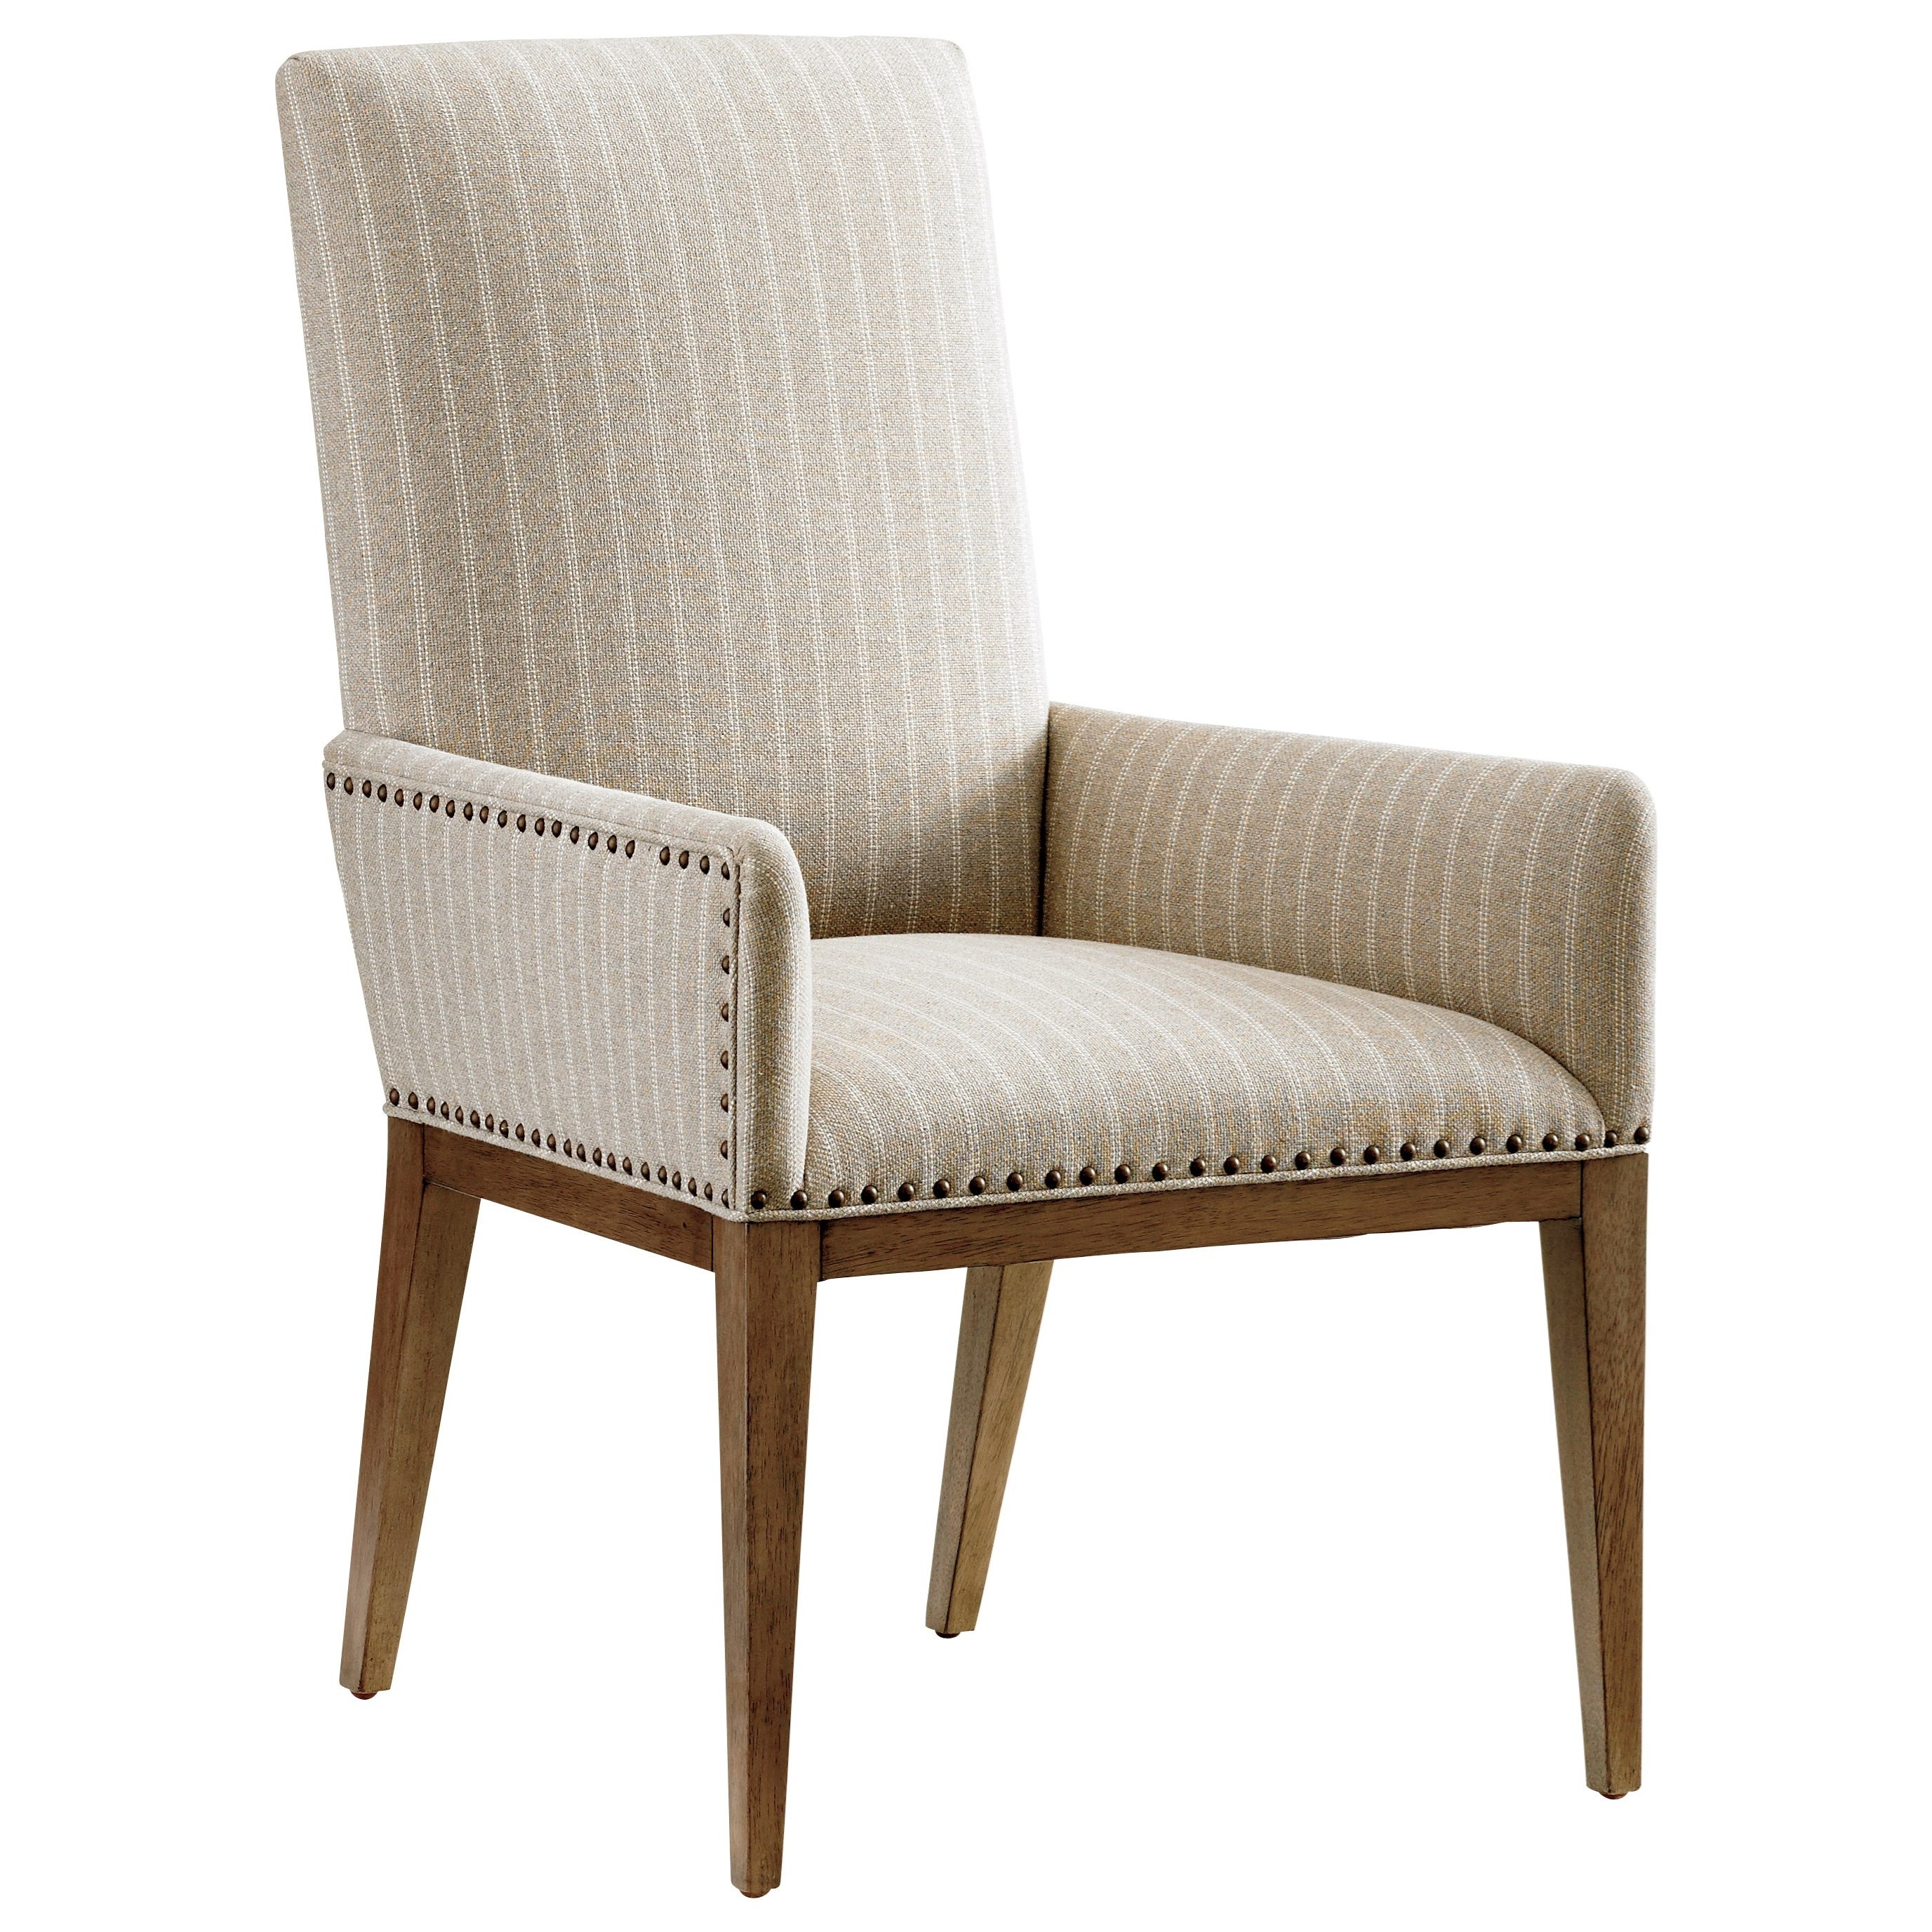 Cypress Point Devereaux Upholstered Arm Chair Custom by Tommy Bahama Home at Baer's Furniture